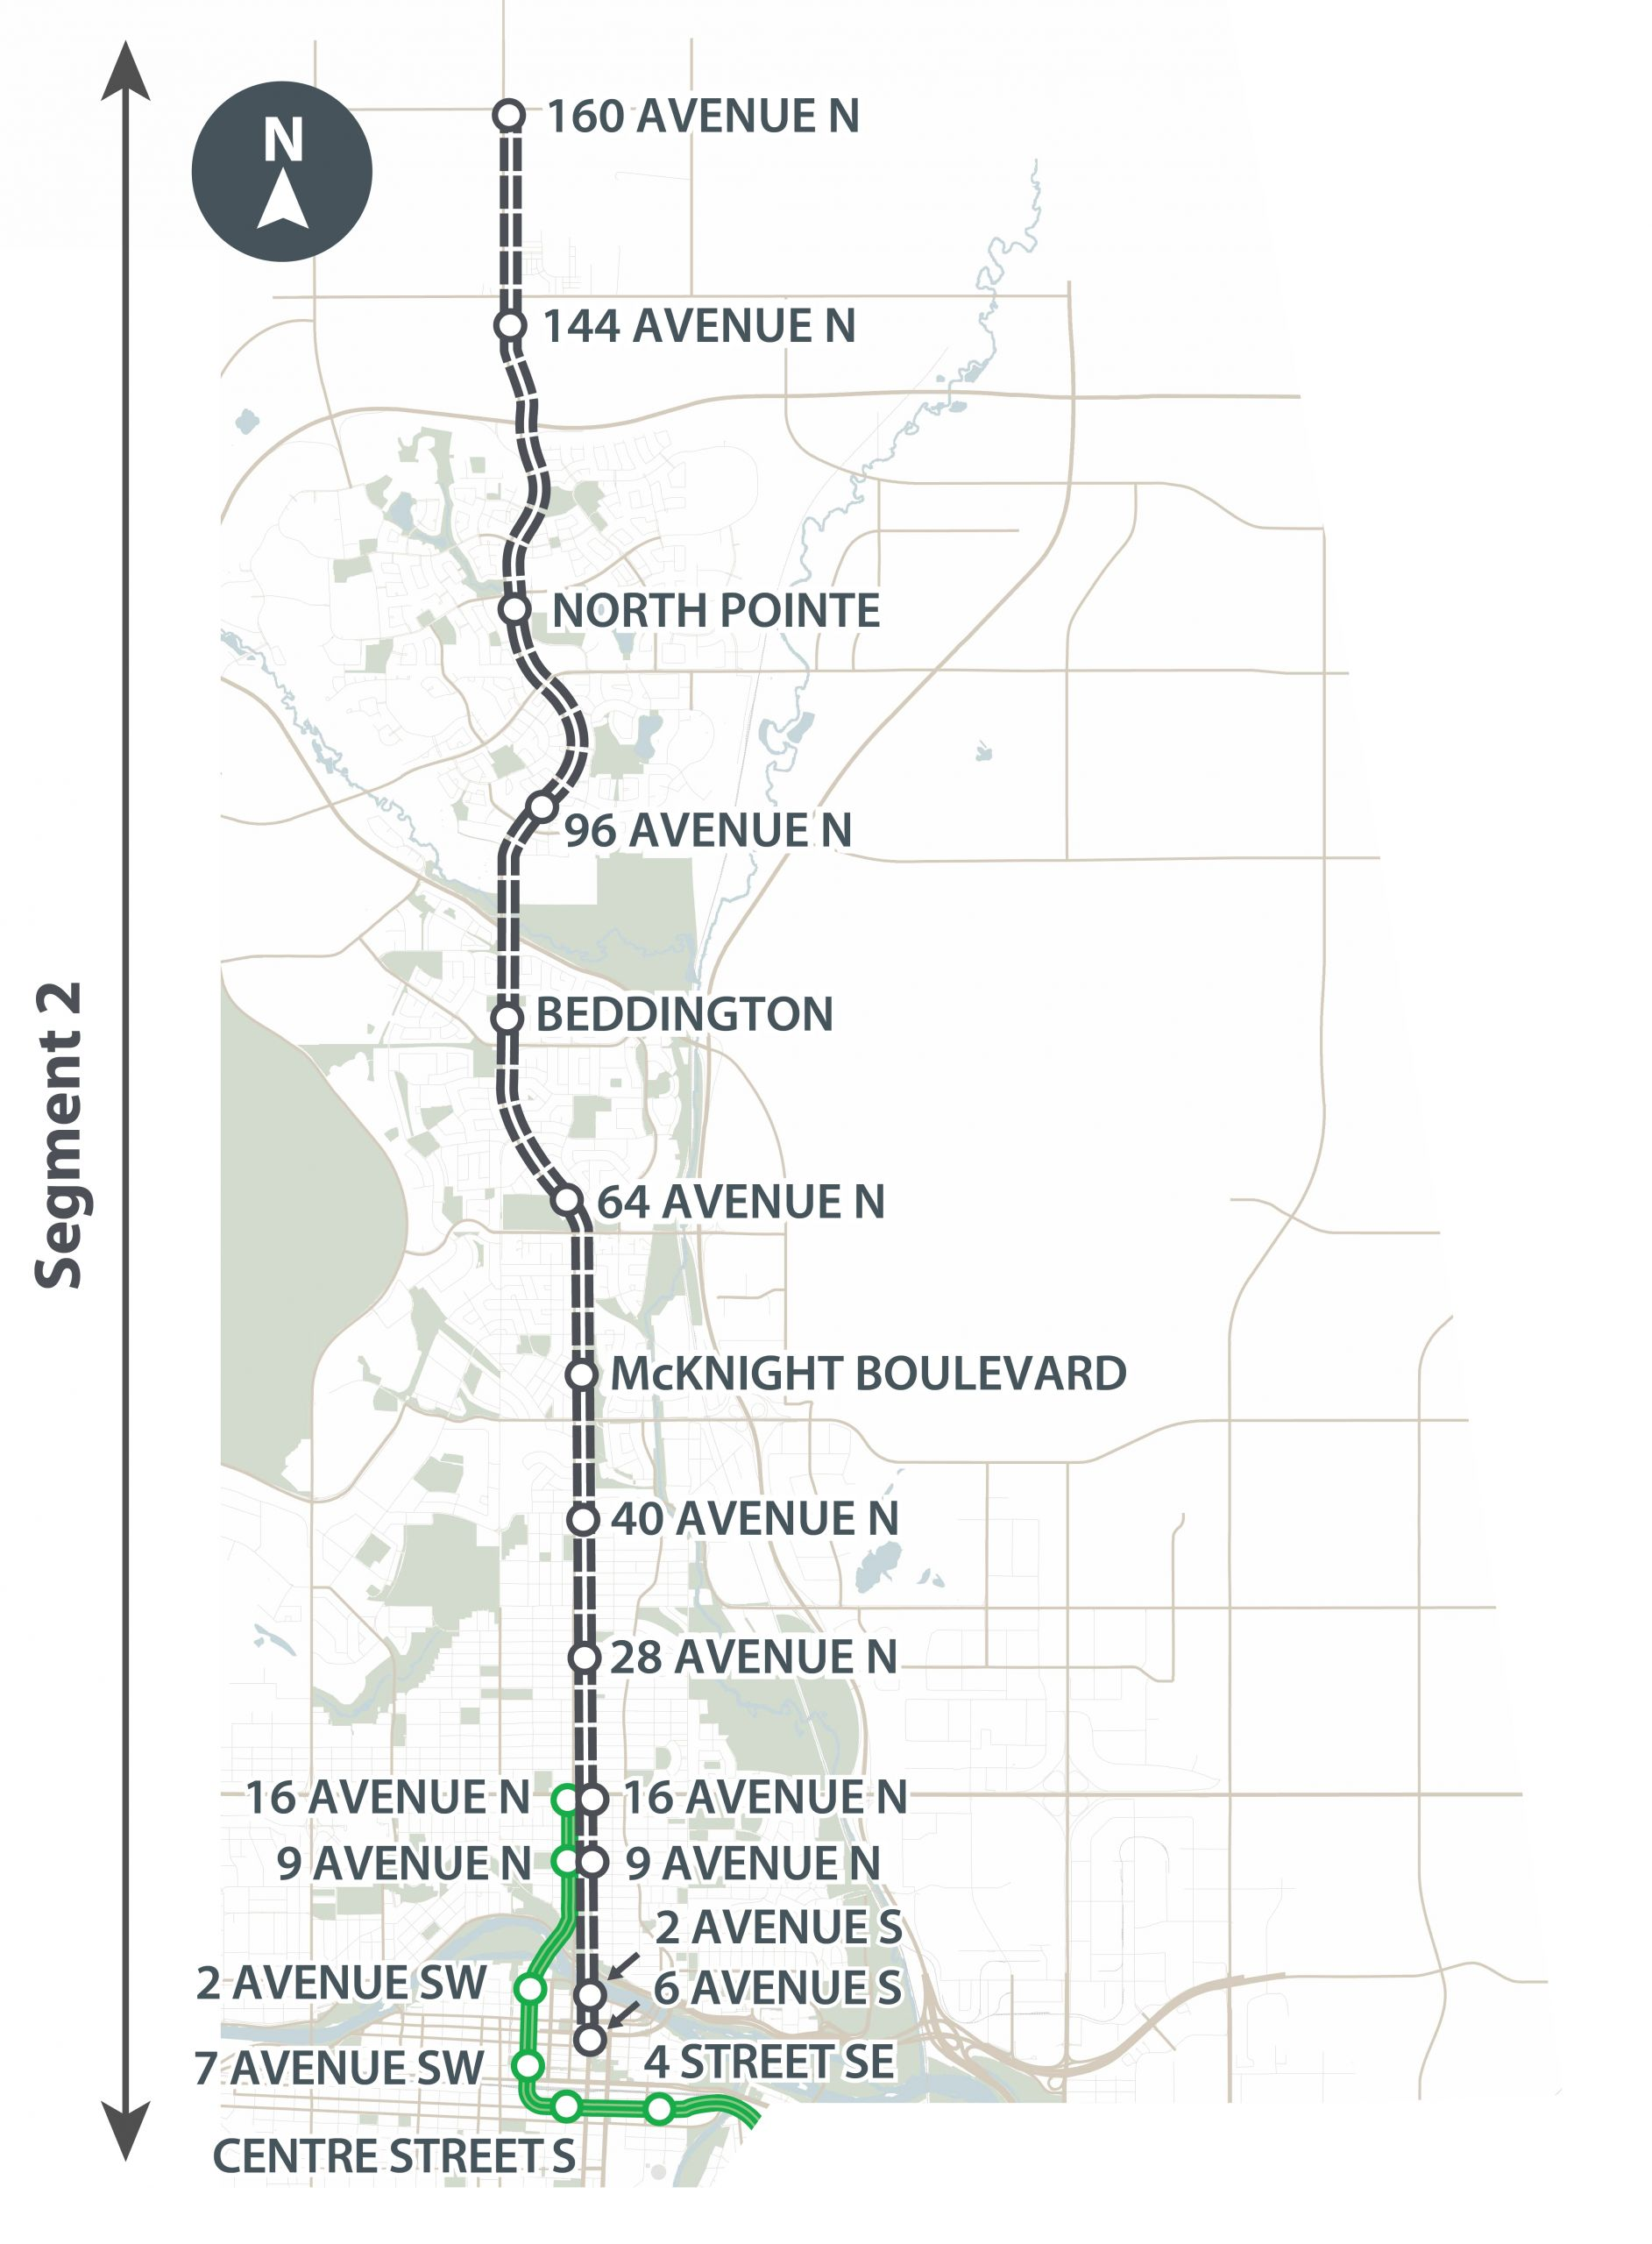 This map shows segment 2 of the Green Line which runs from 16 Ave N to the Elbow River.